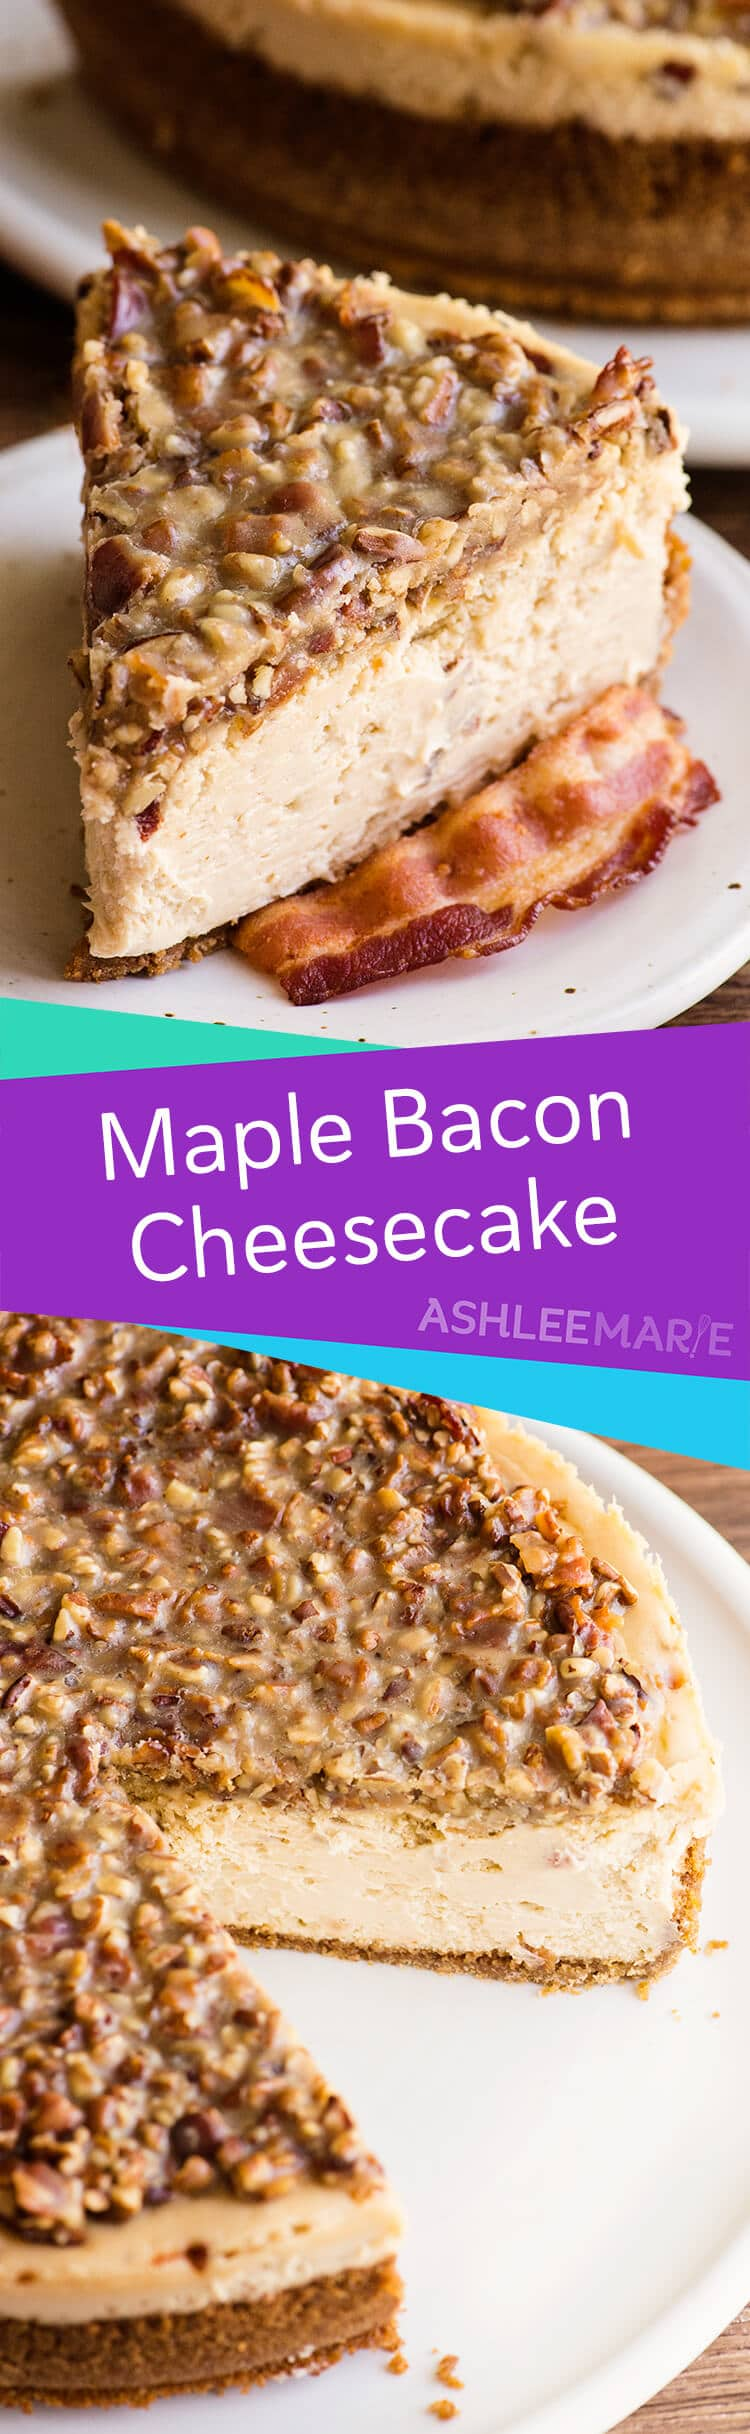 maple cheesecake with bacon